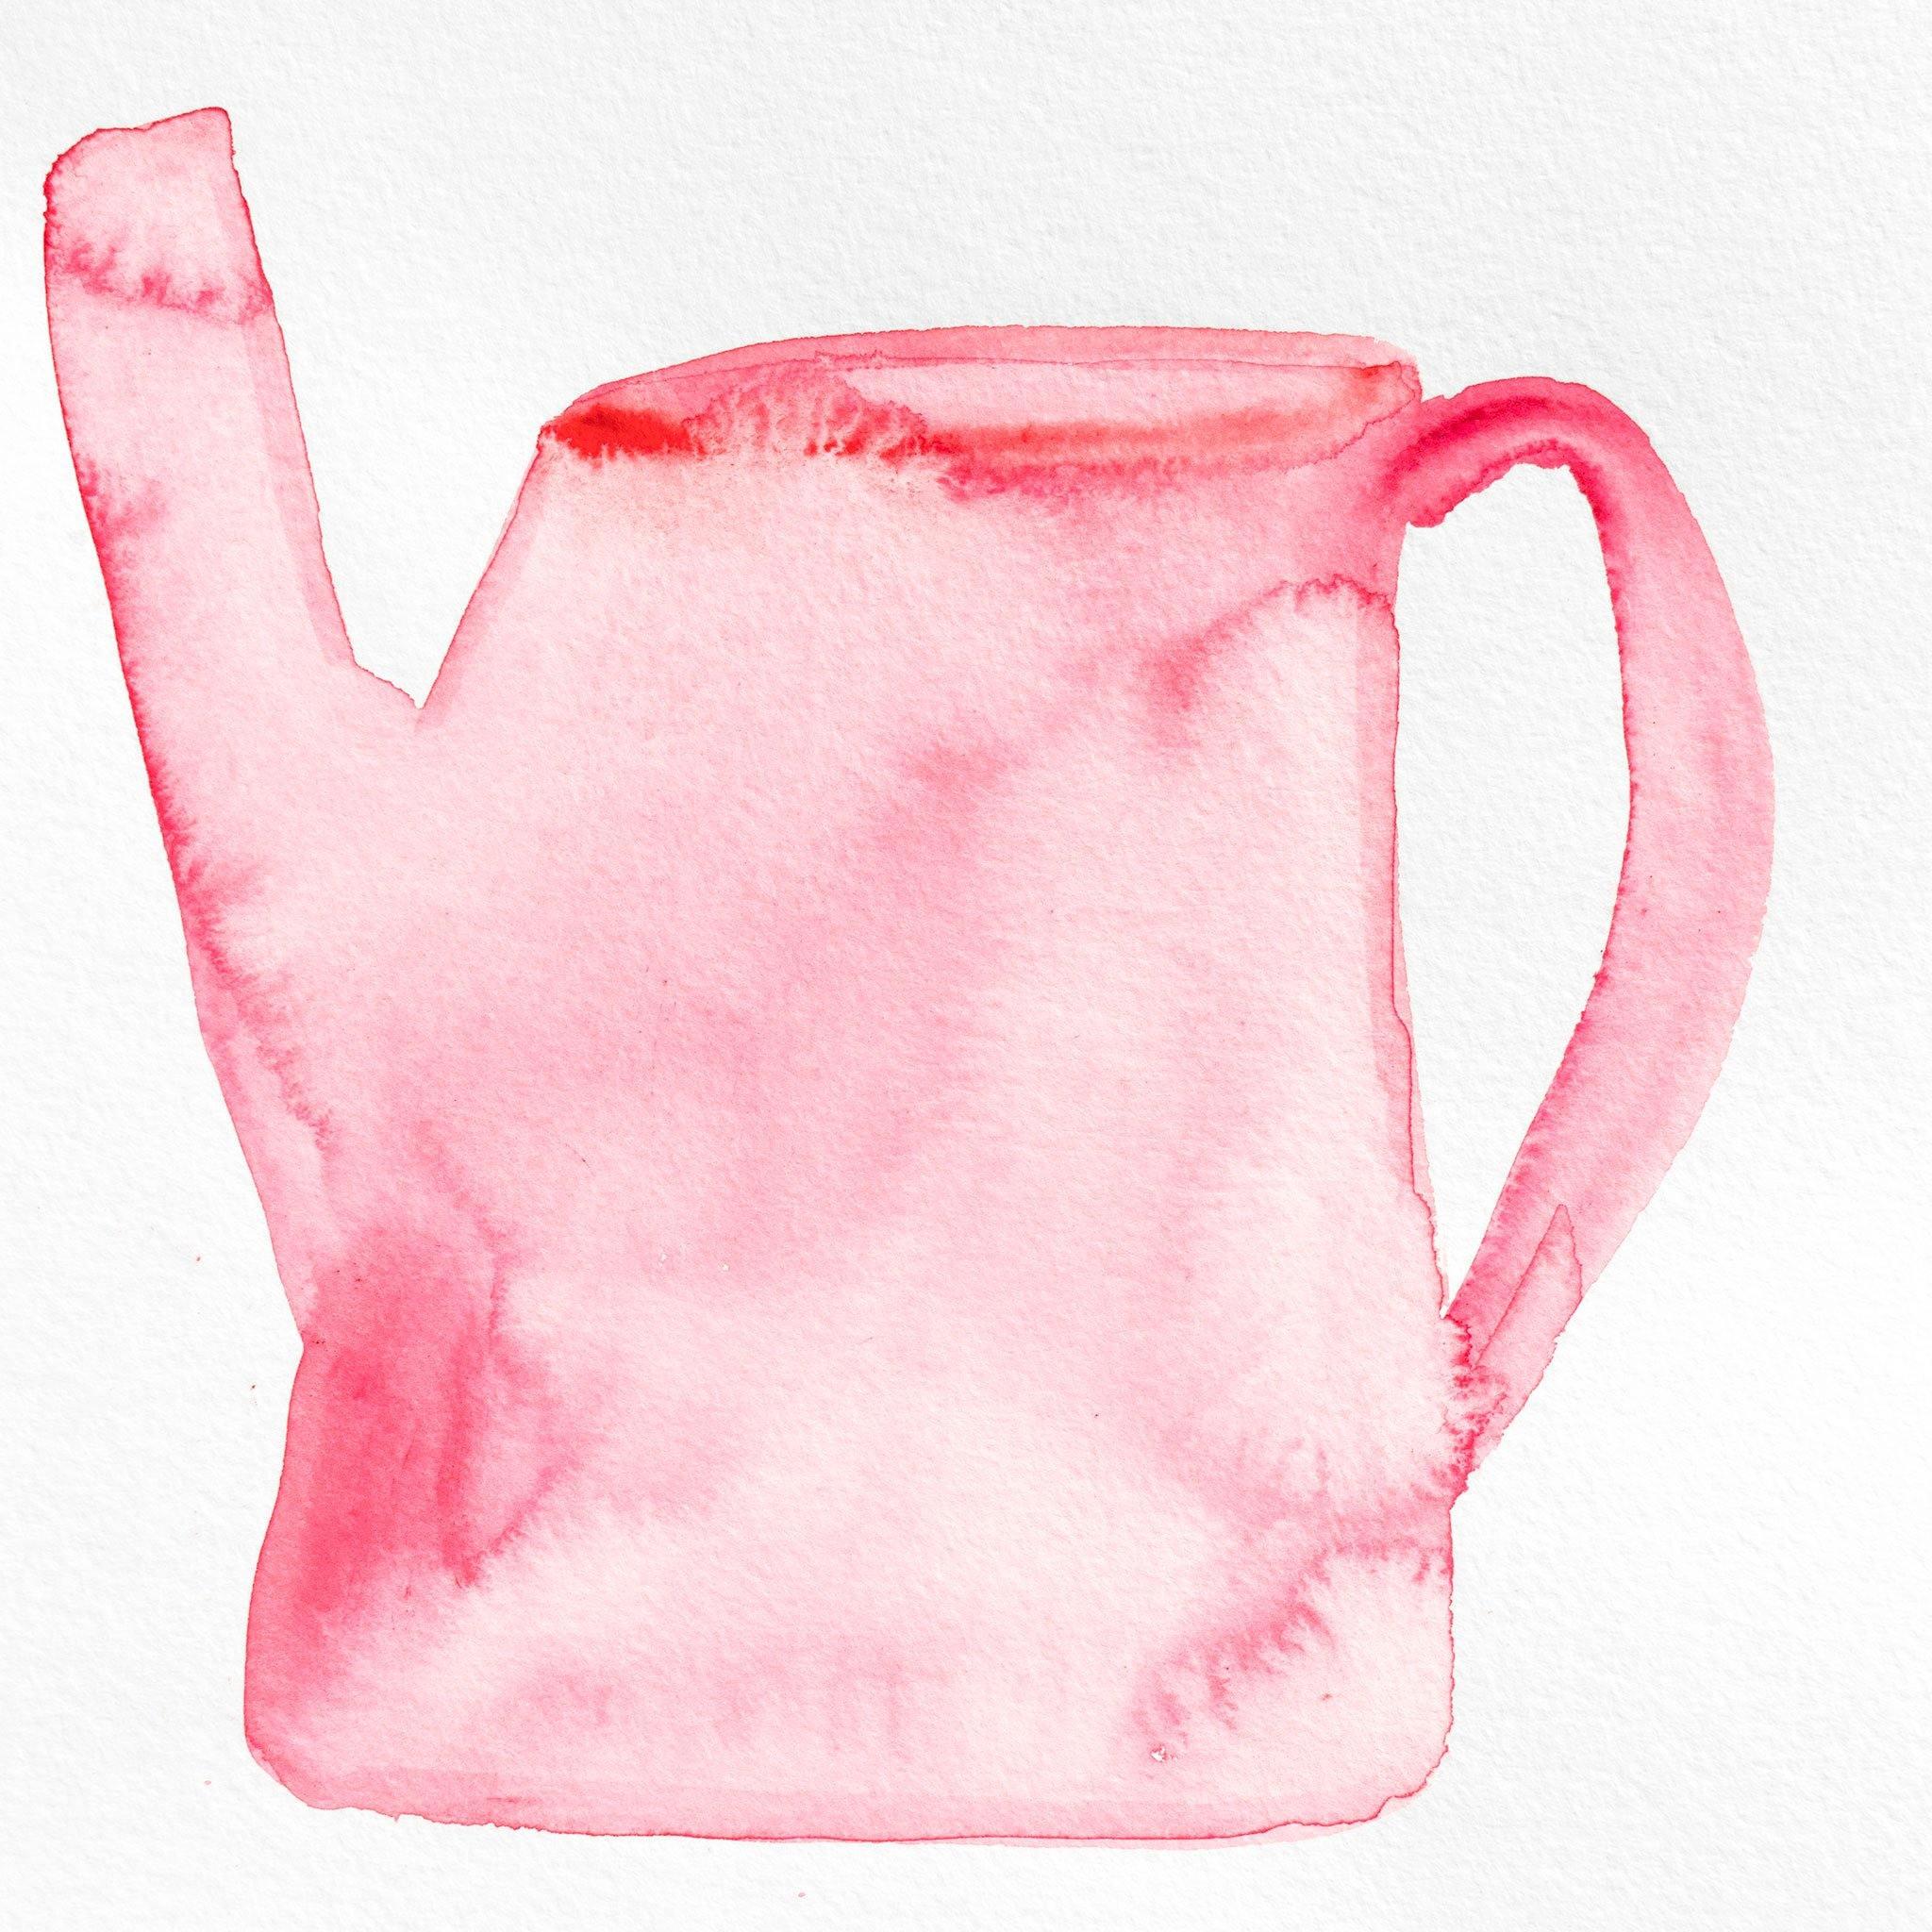 Tea Vessel 38, Original Work on Paper  by  Tea Vessel 38 Tappan